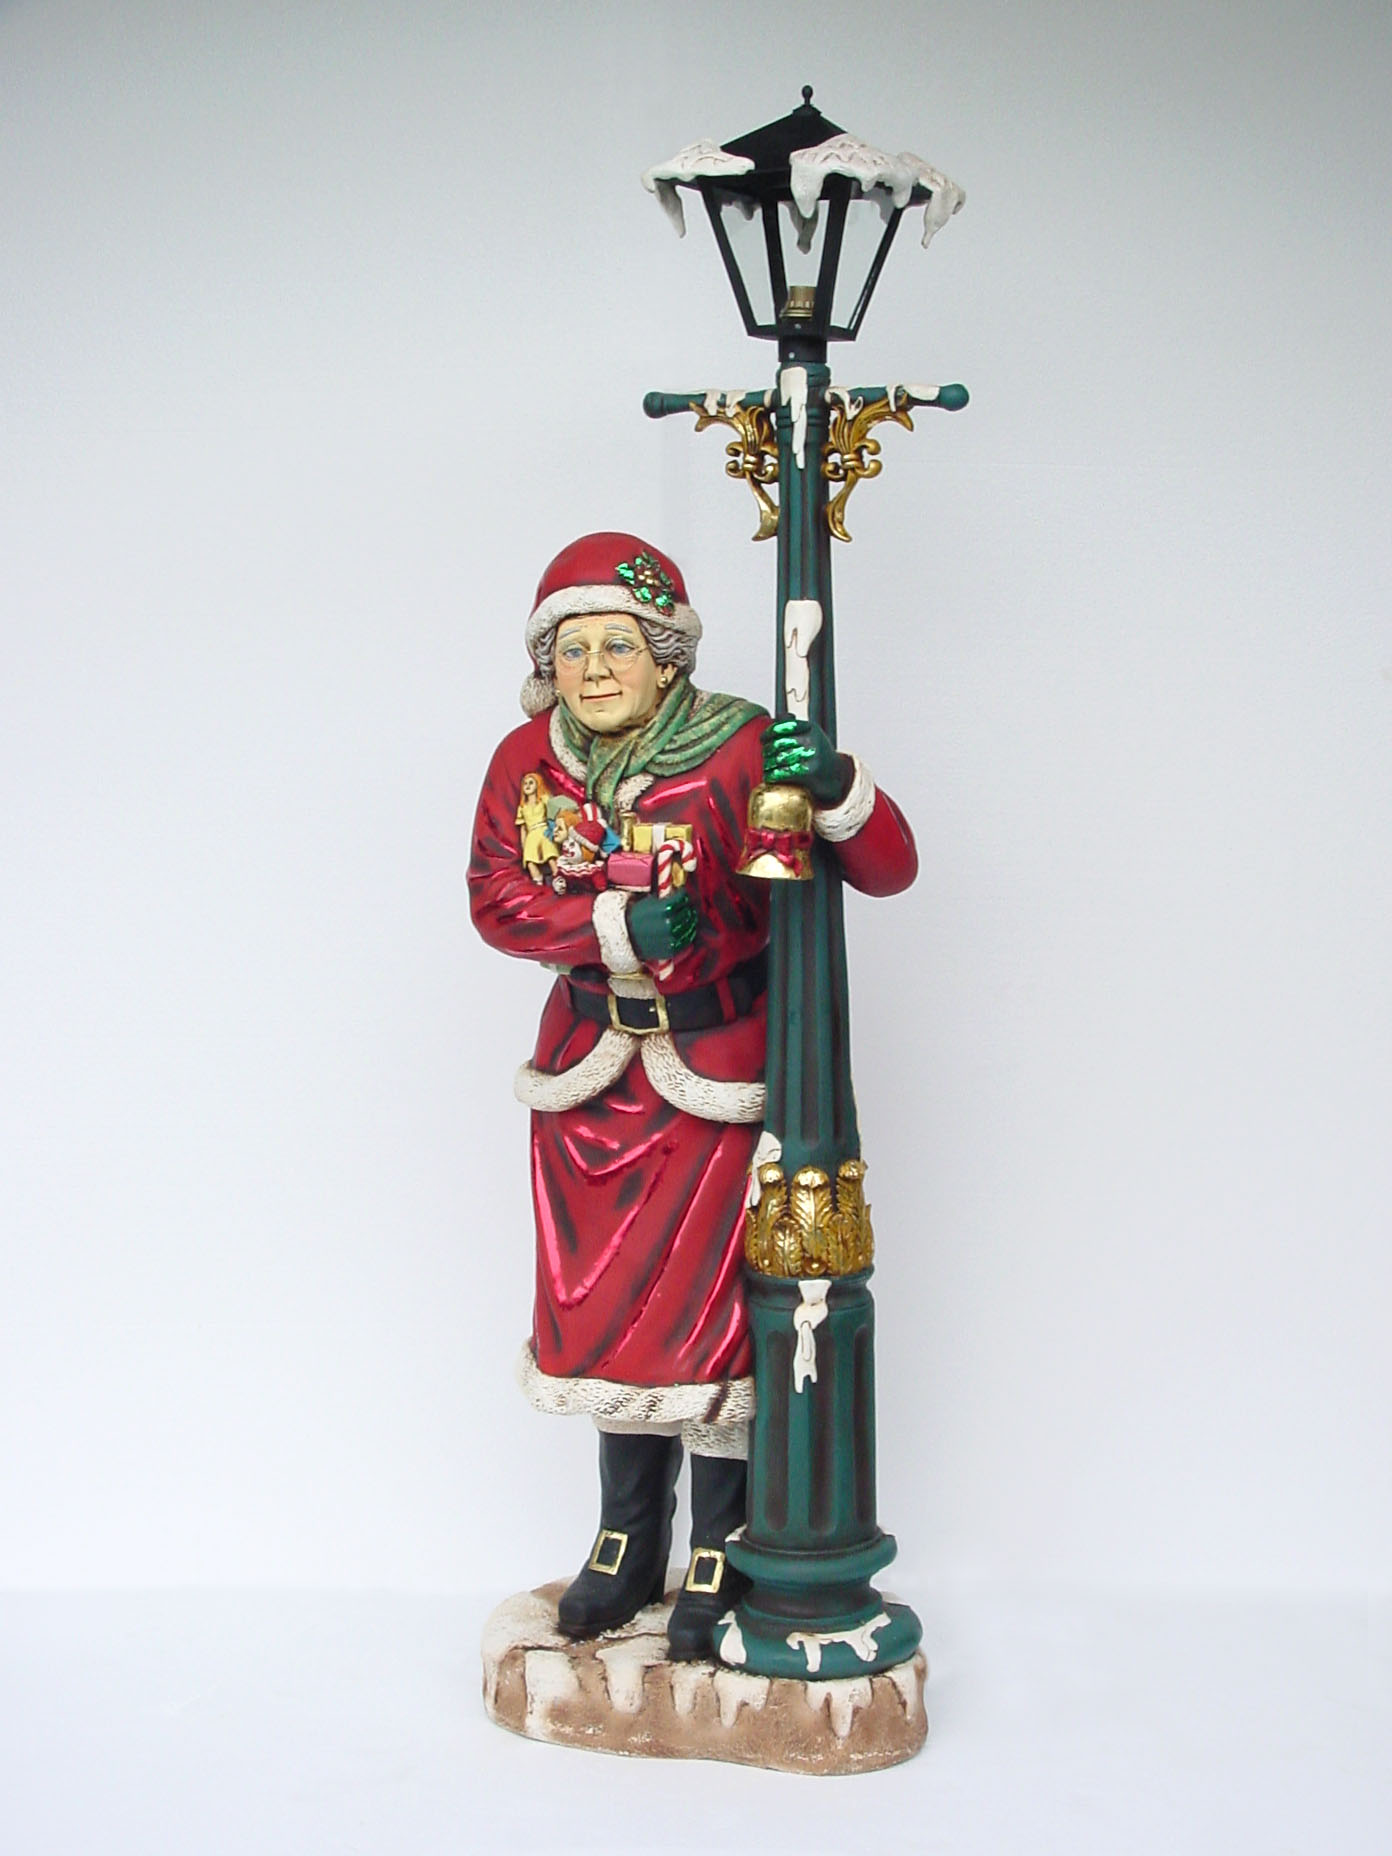 Mrs Santa Claus Statue Lamp Post Christmas Decor Life Size 6FT